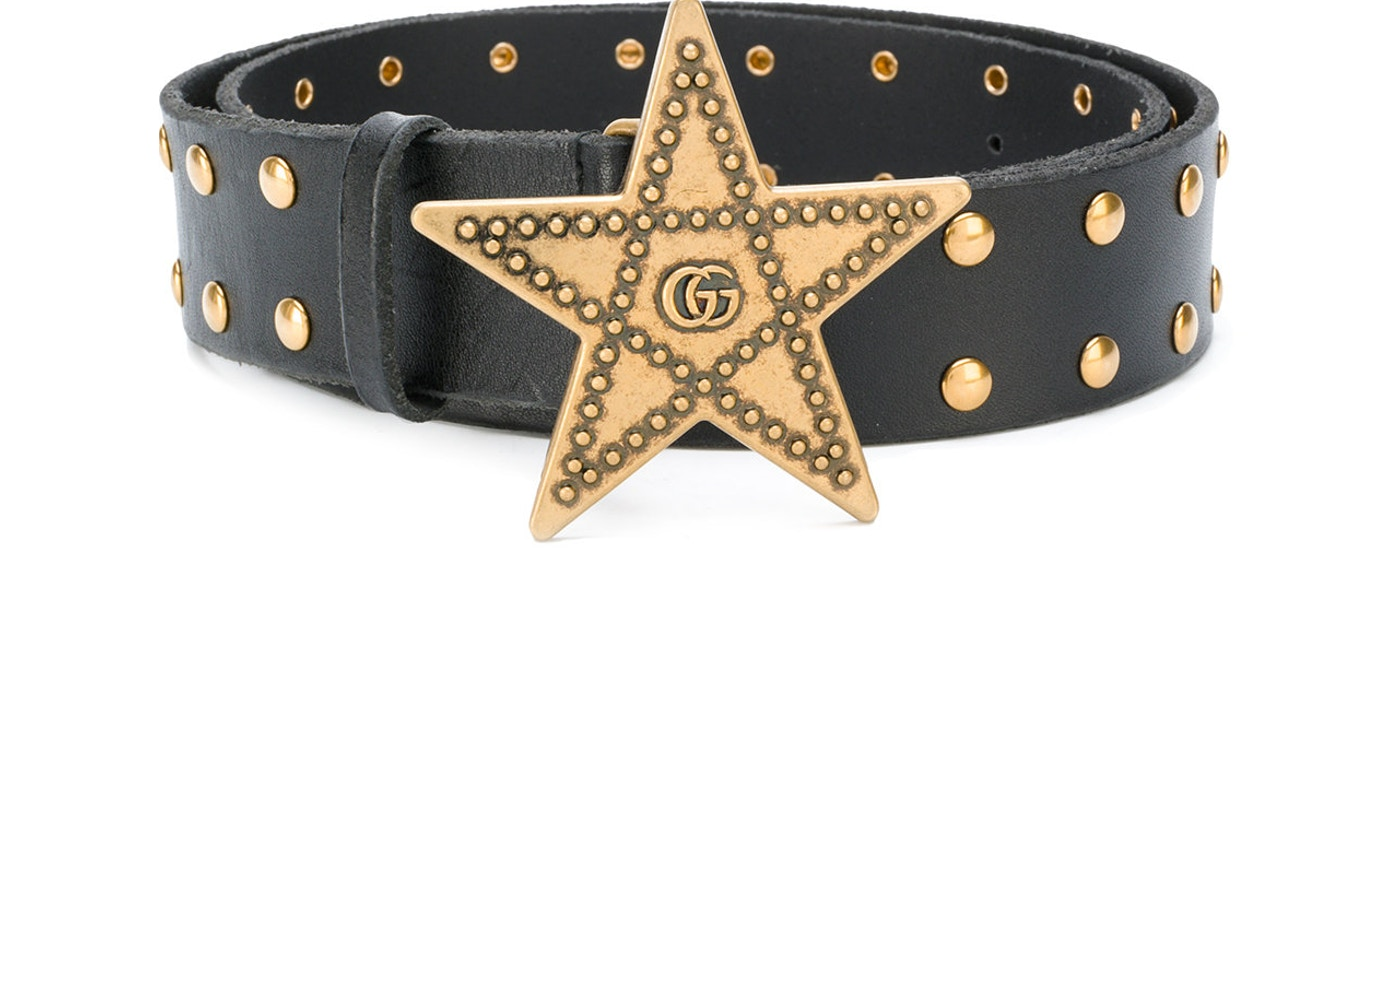 09c7b6e9f30 Gucci Star Studded Belt 65-20 Black. 65-20 Black